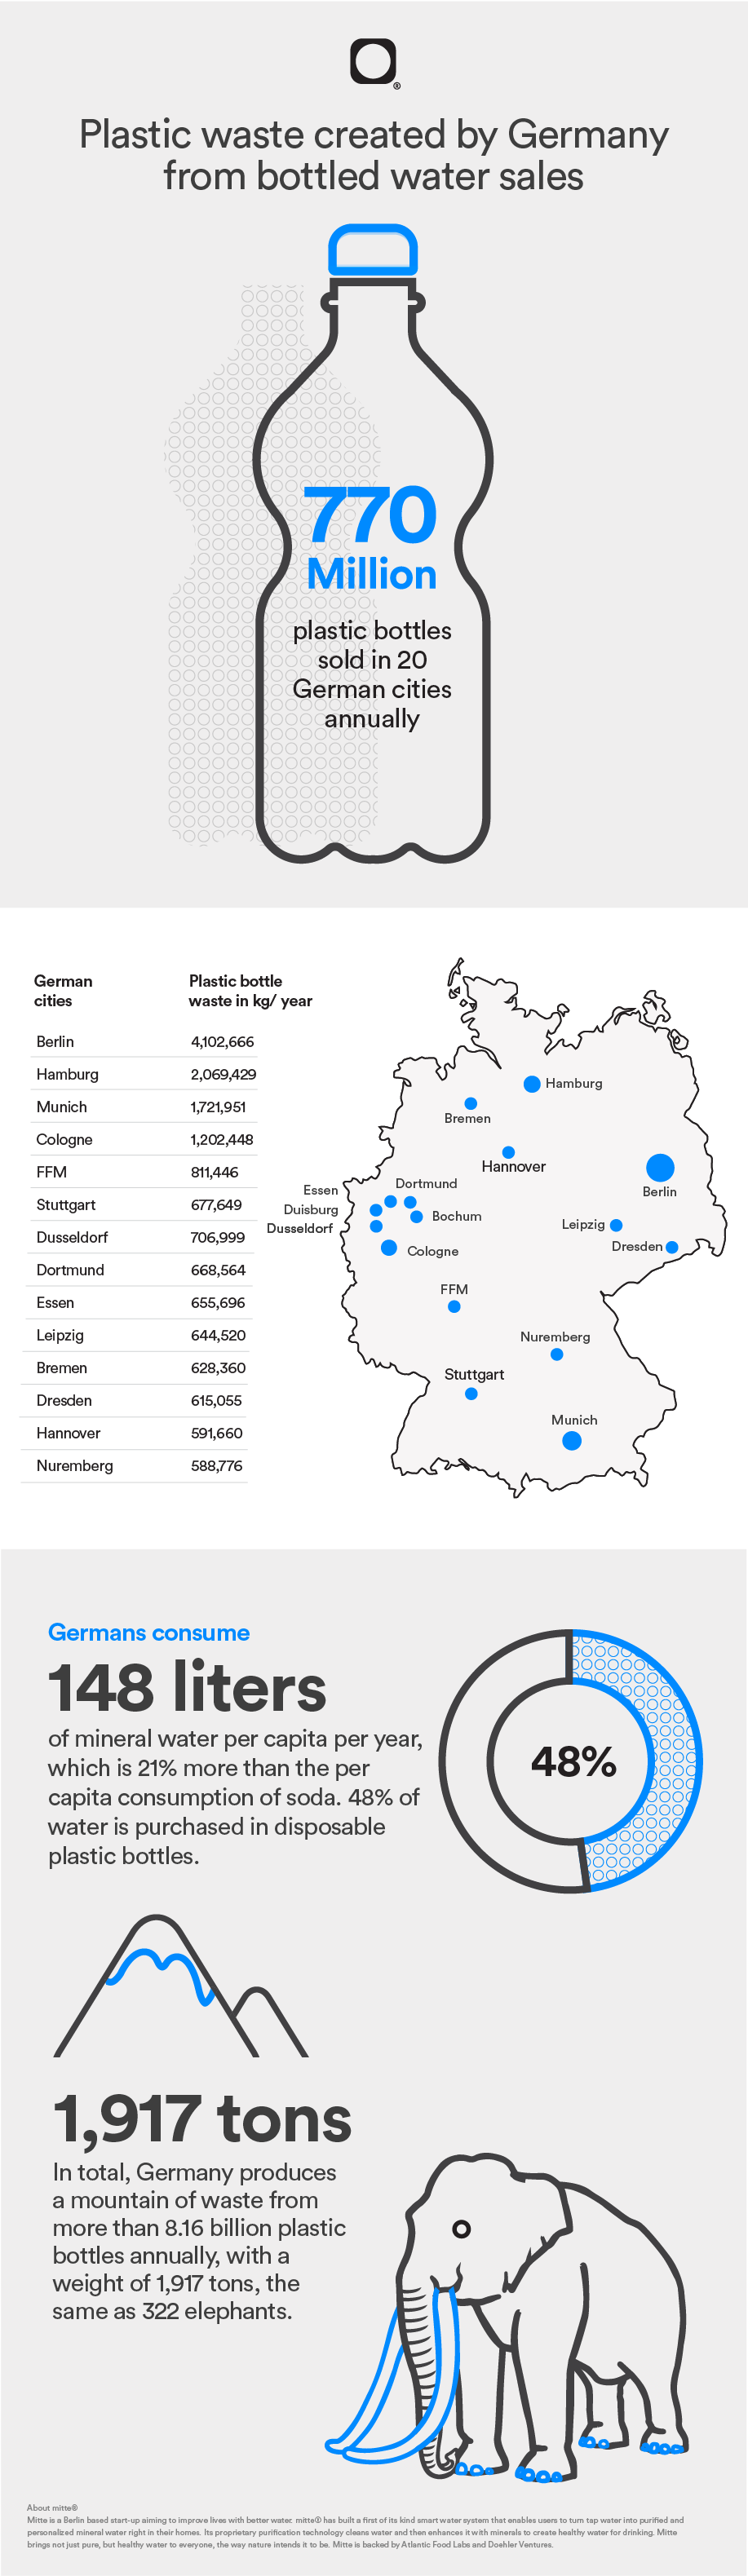 Infographic Plasitc waste breated by Germany from bottled water sales